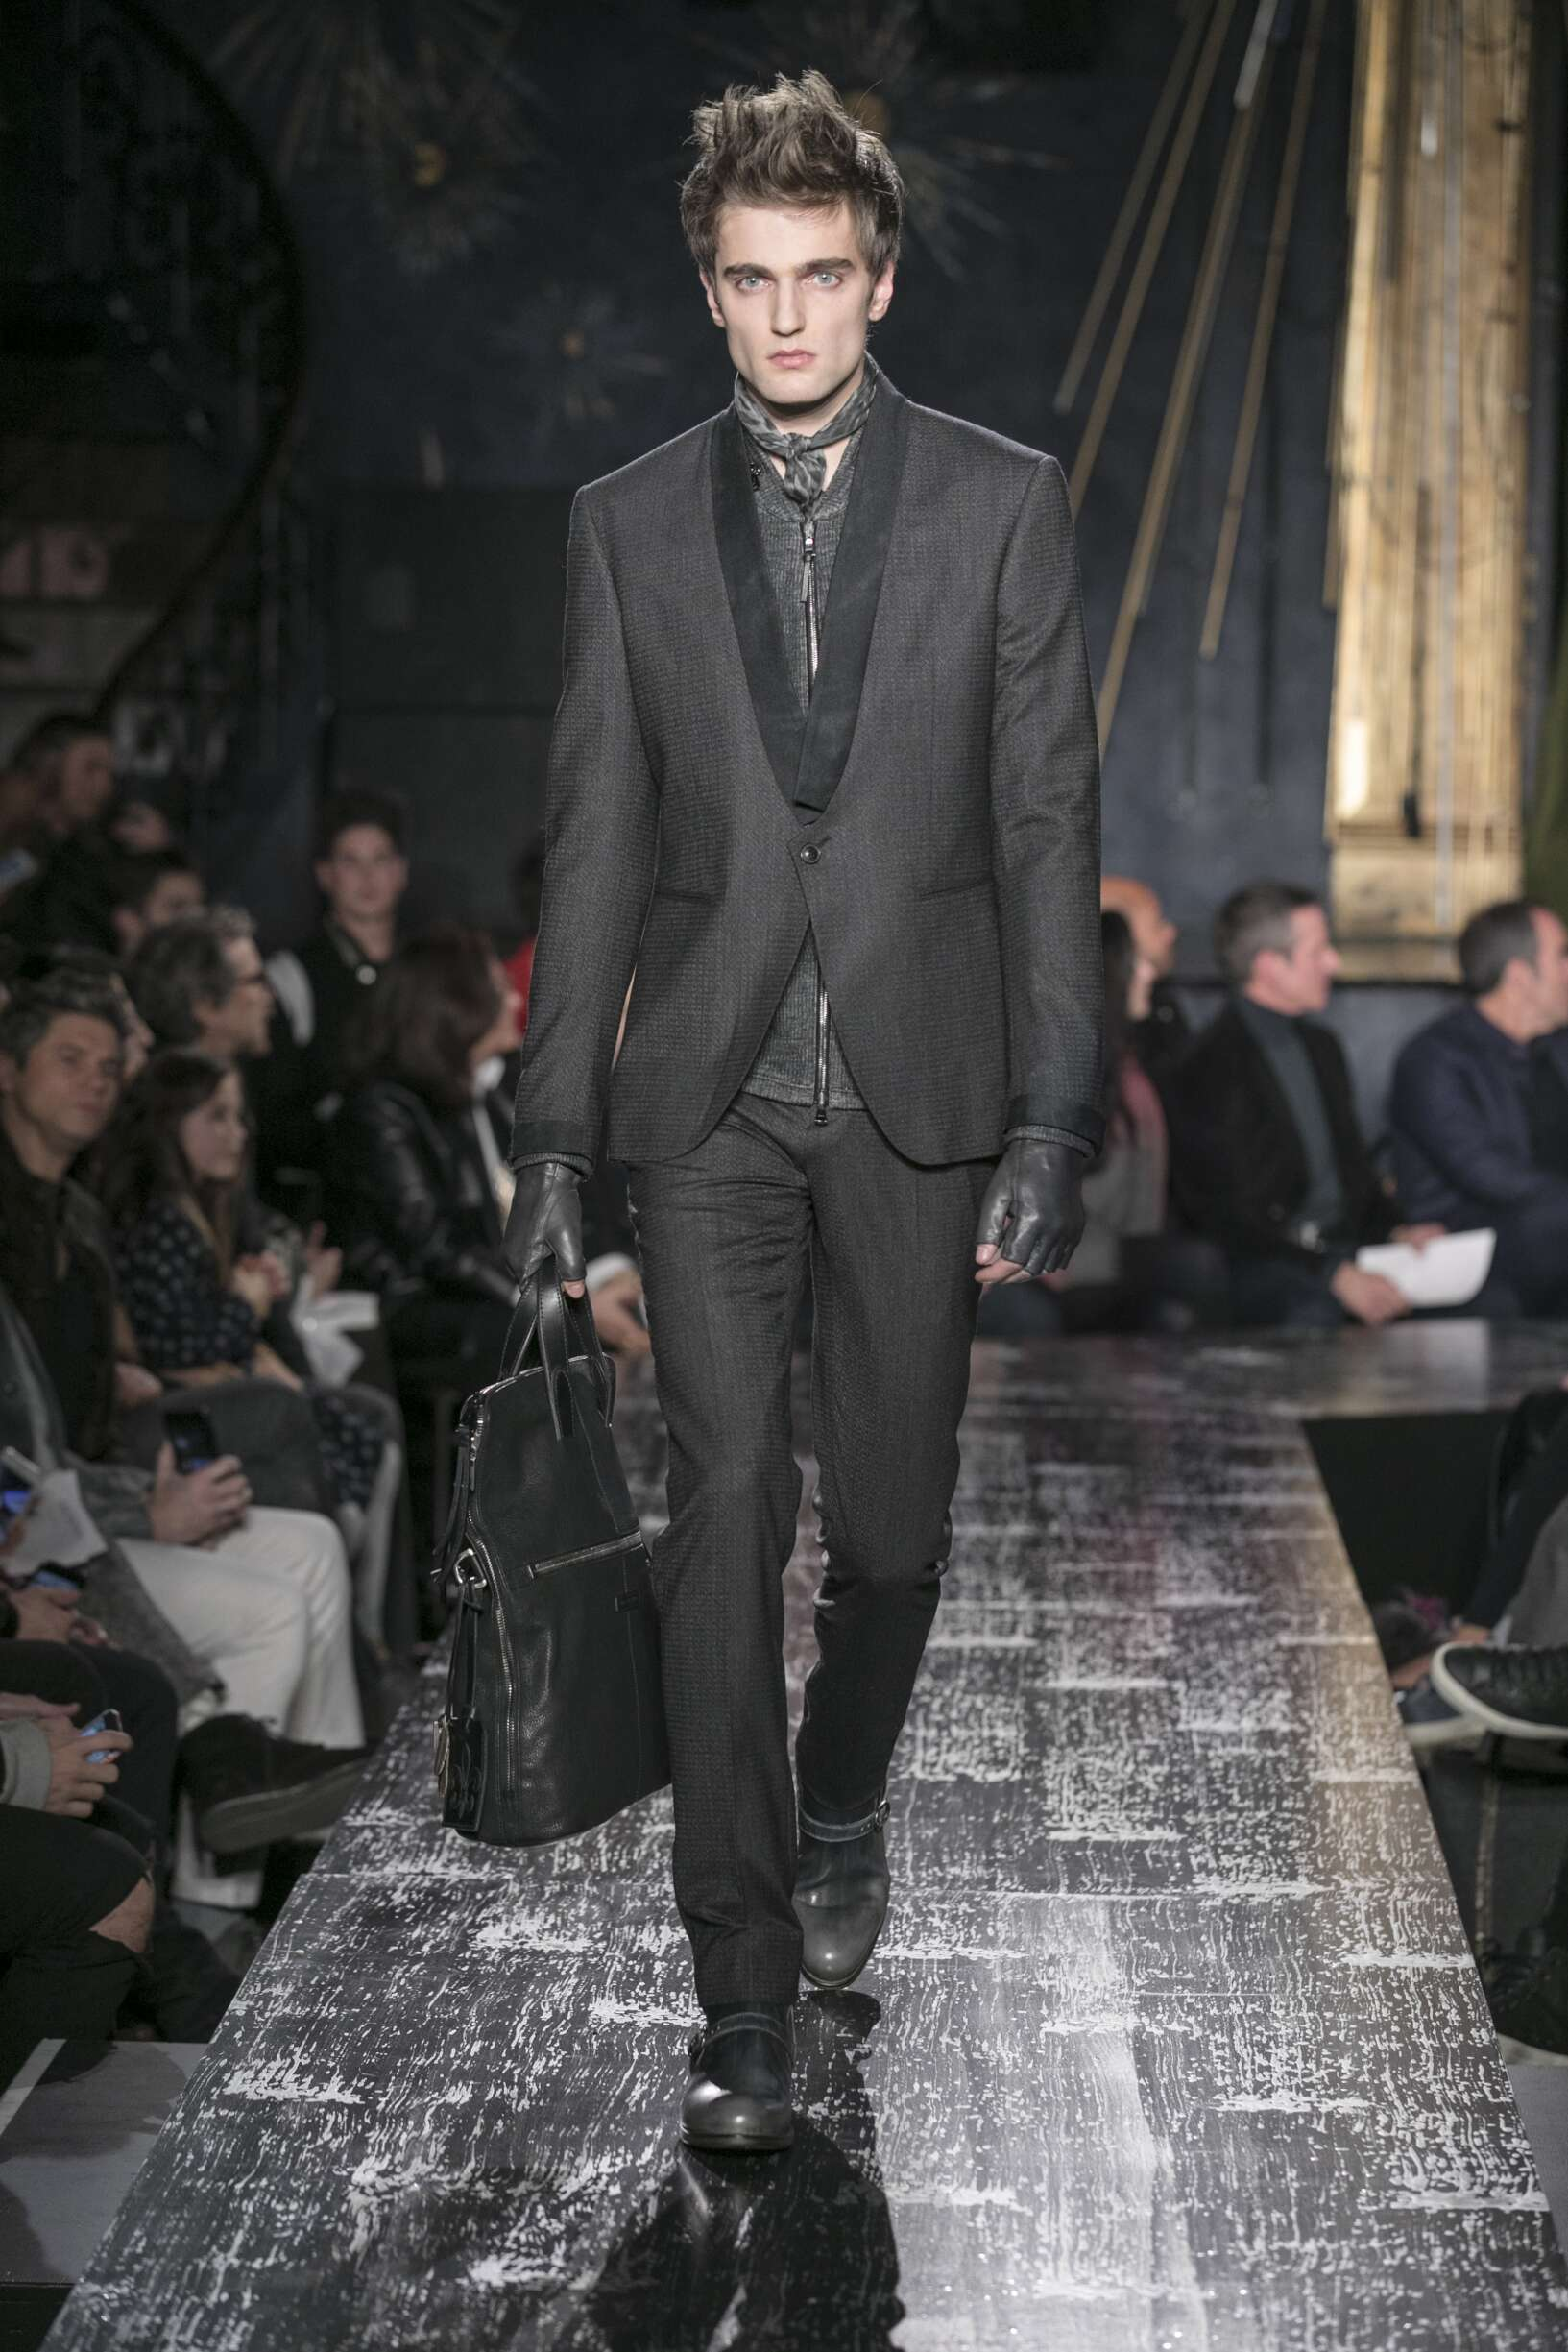 John Varvatos Men's Collection 2017